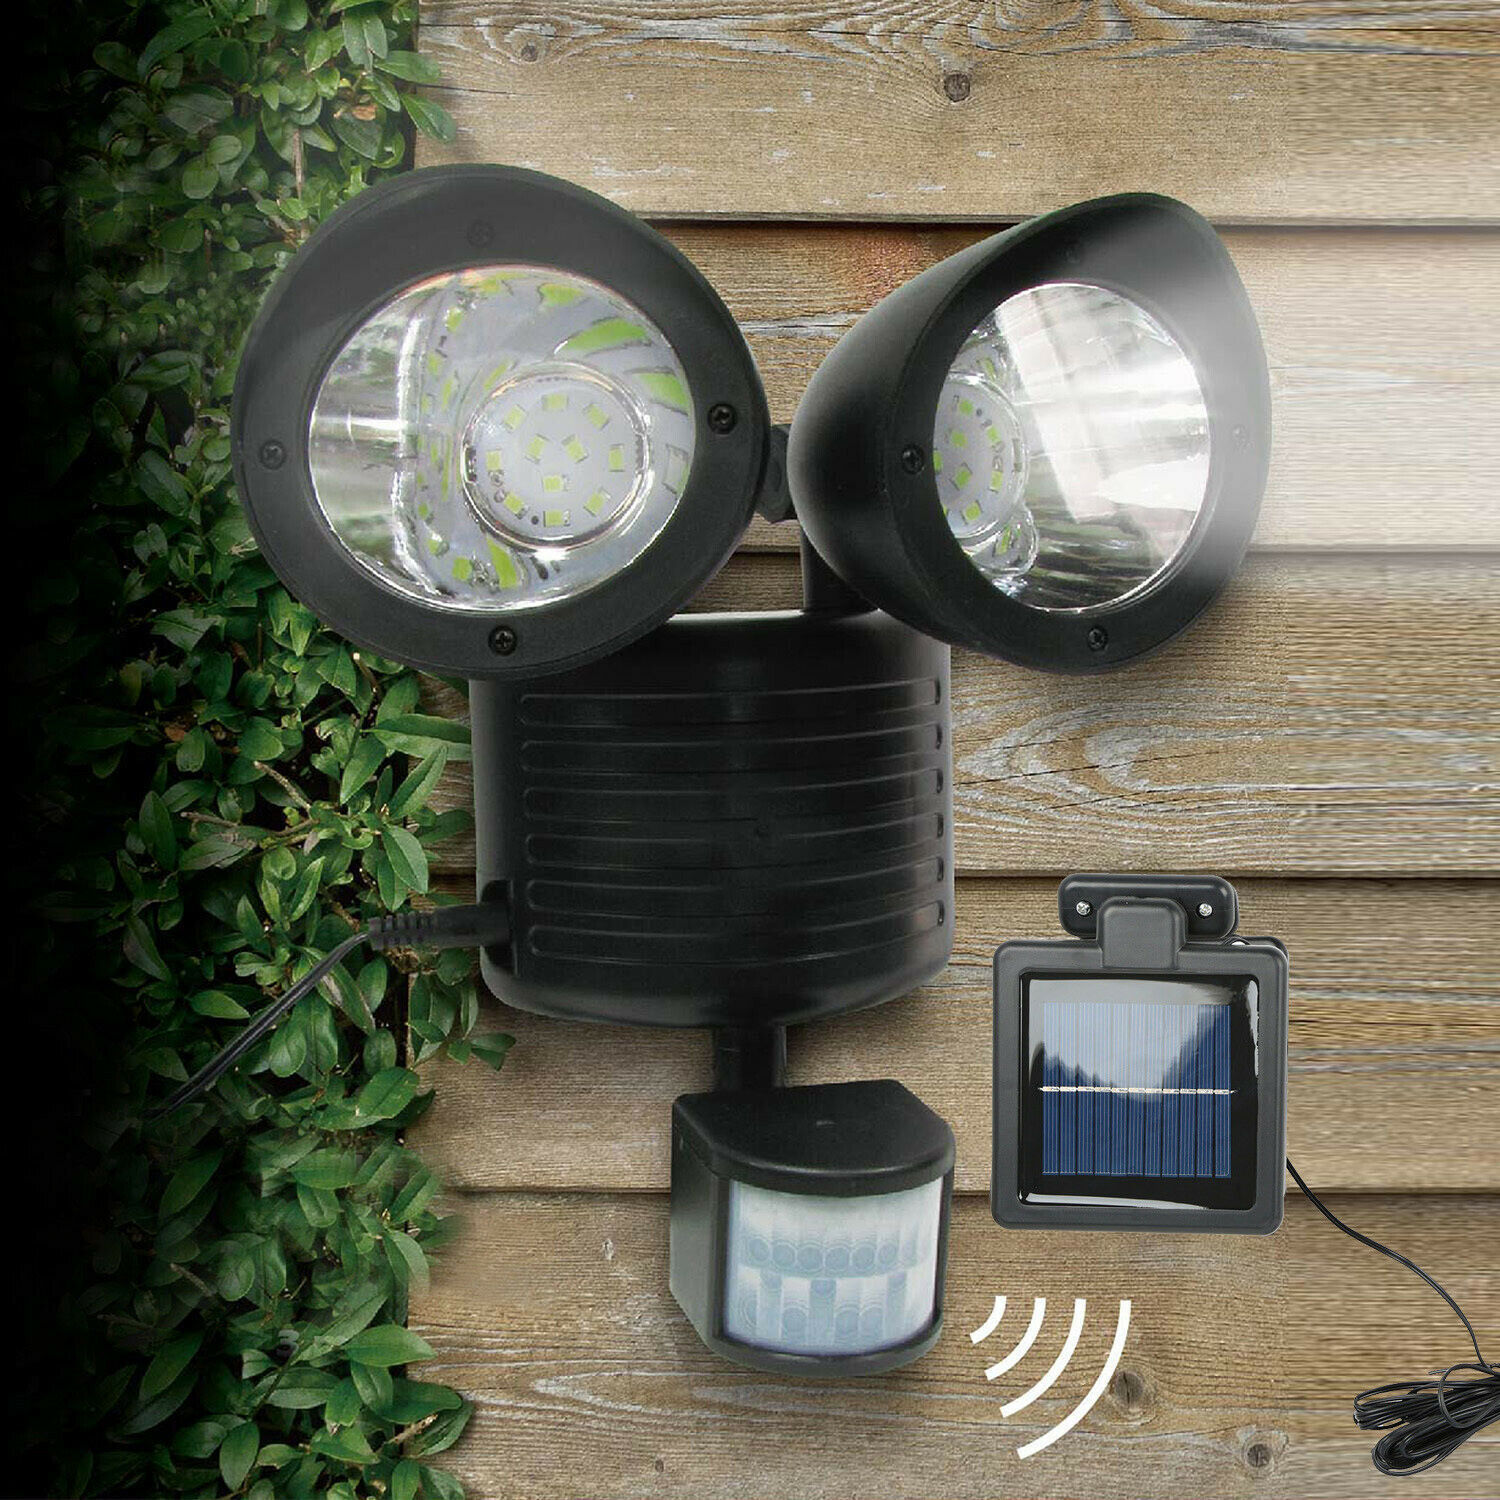 22 LED Dual Security Detector Solar Spot Light Motion Sensor